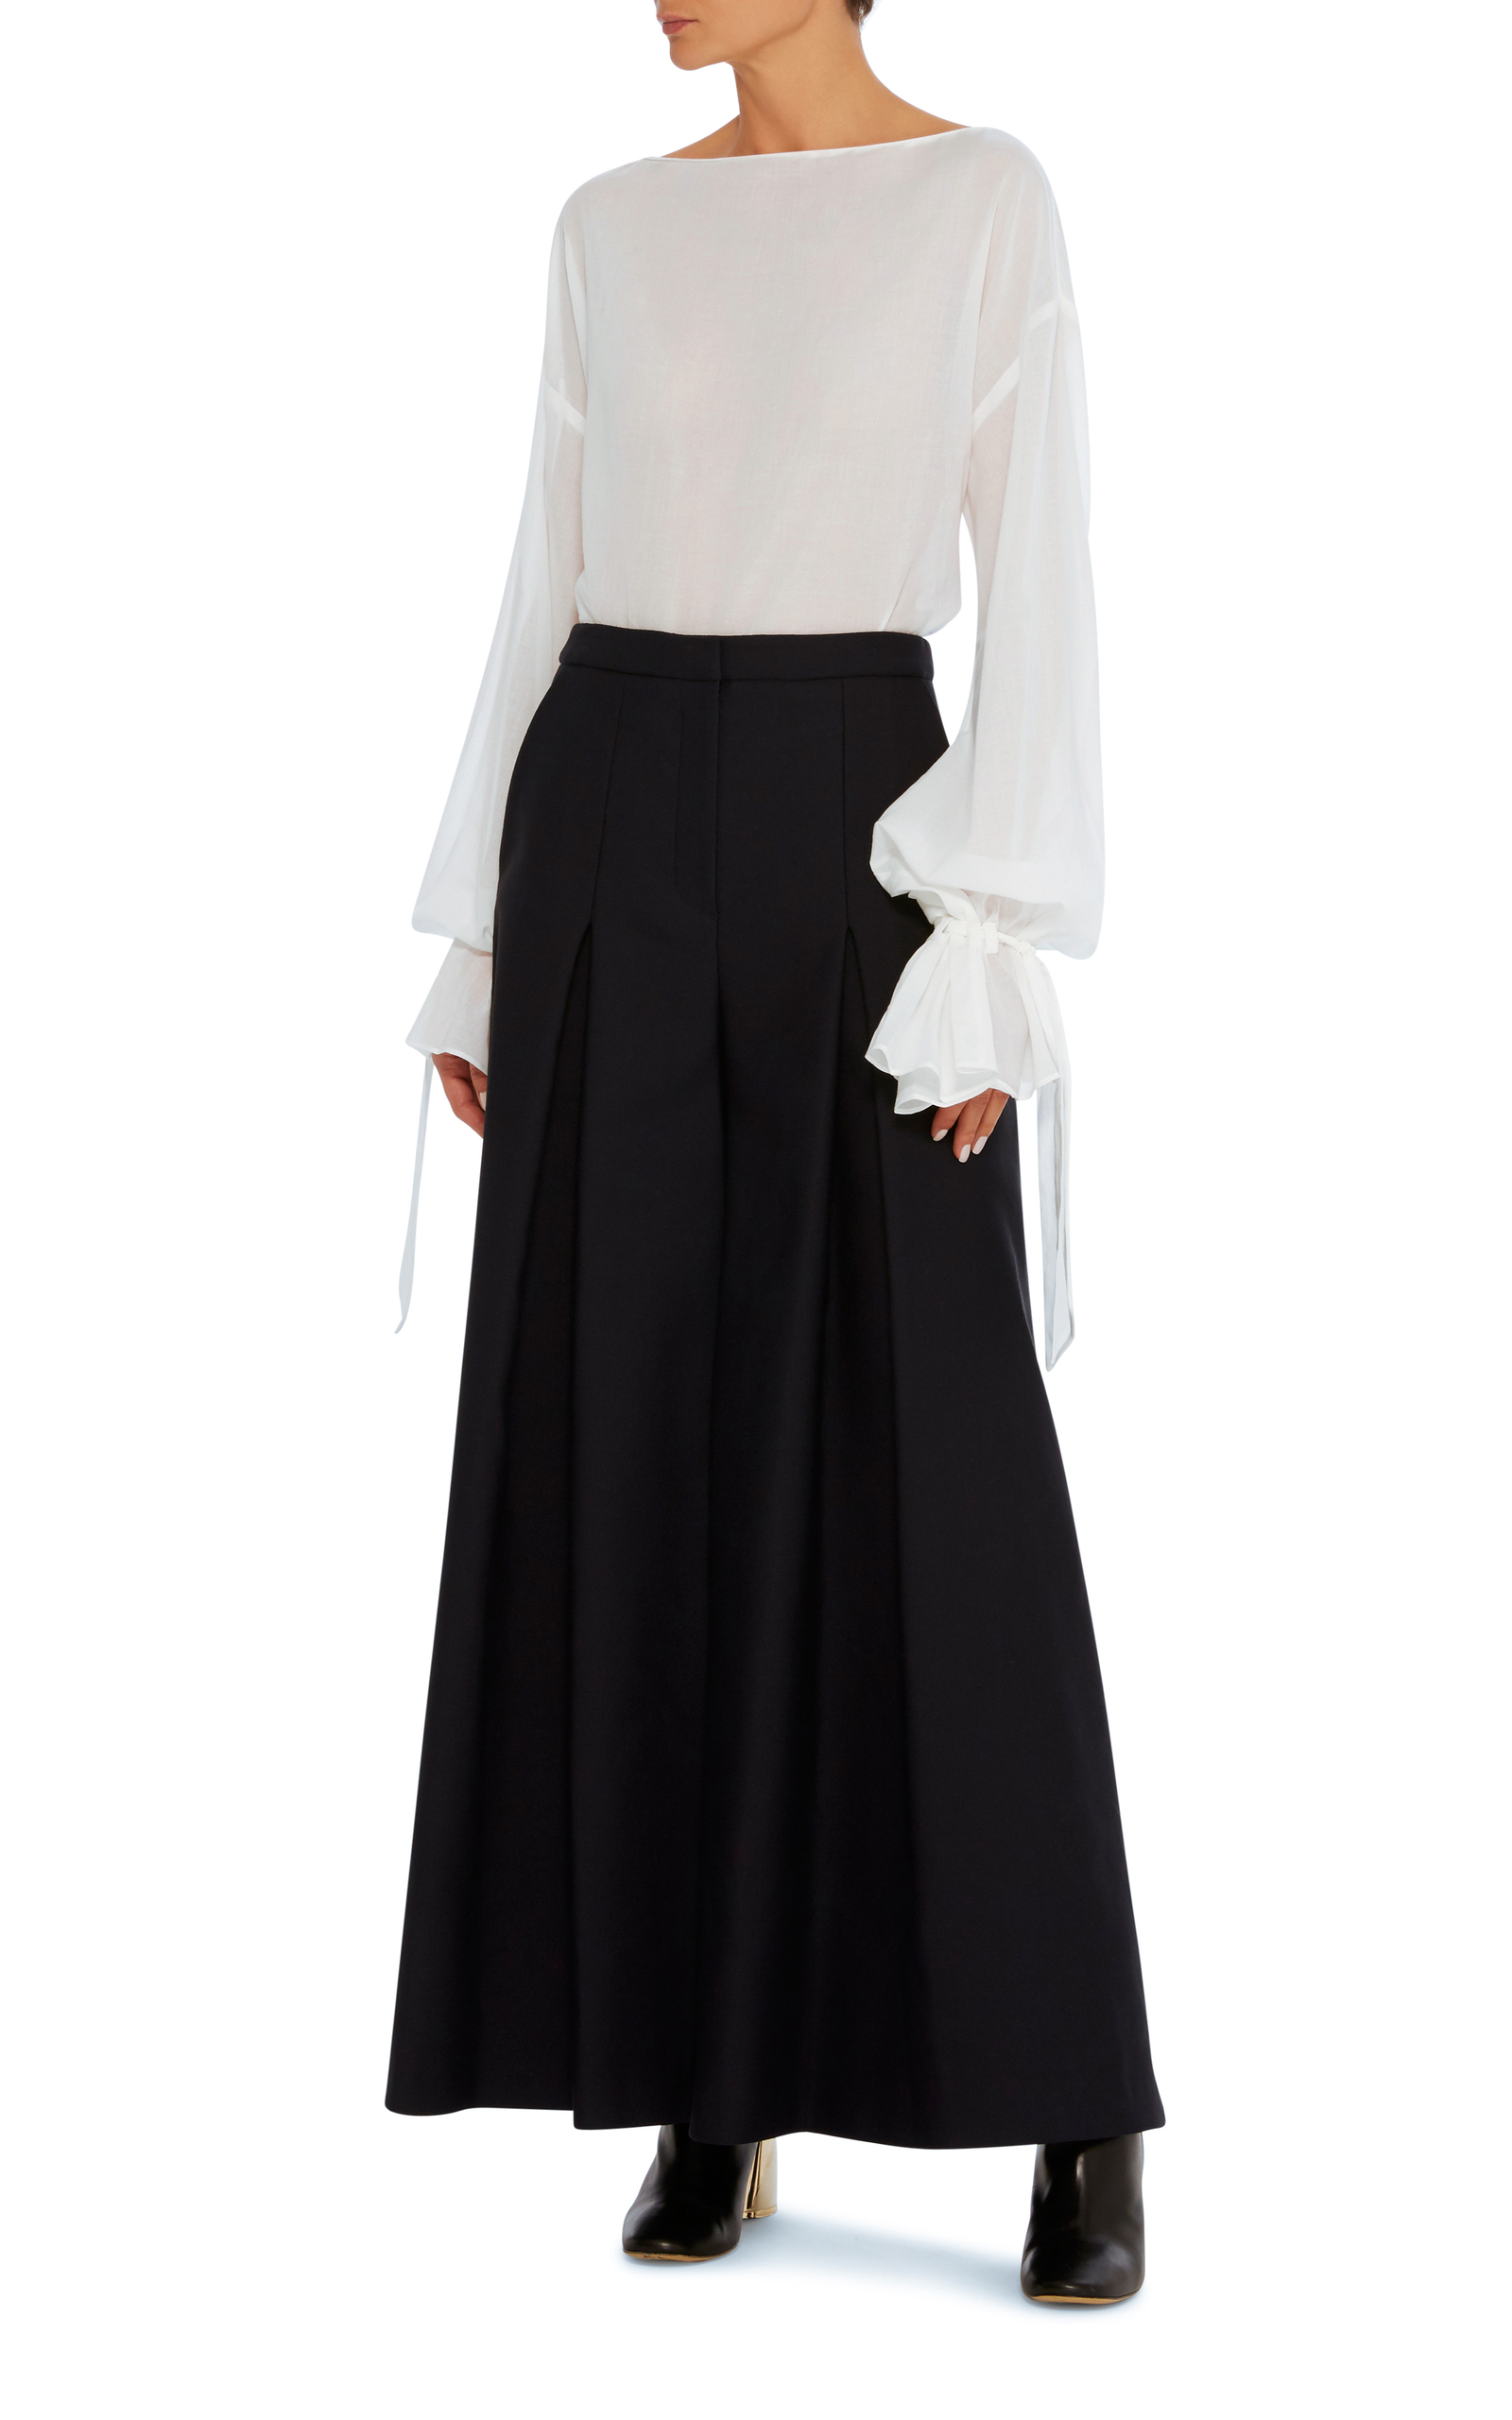 large_hensely-white-white-cotton-tie-sleeve-blouse.jpg